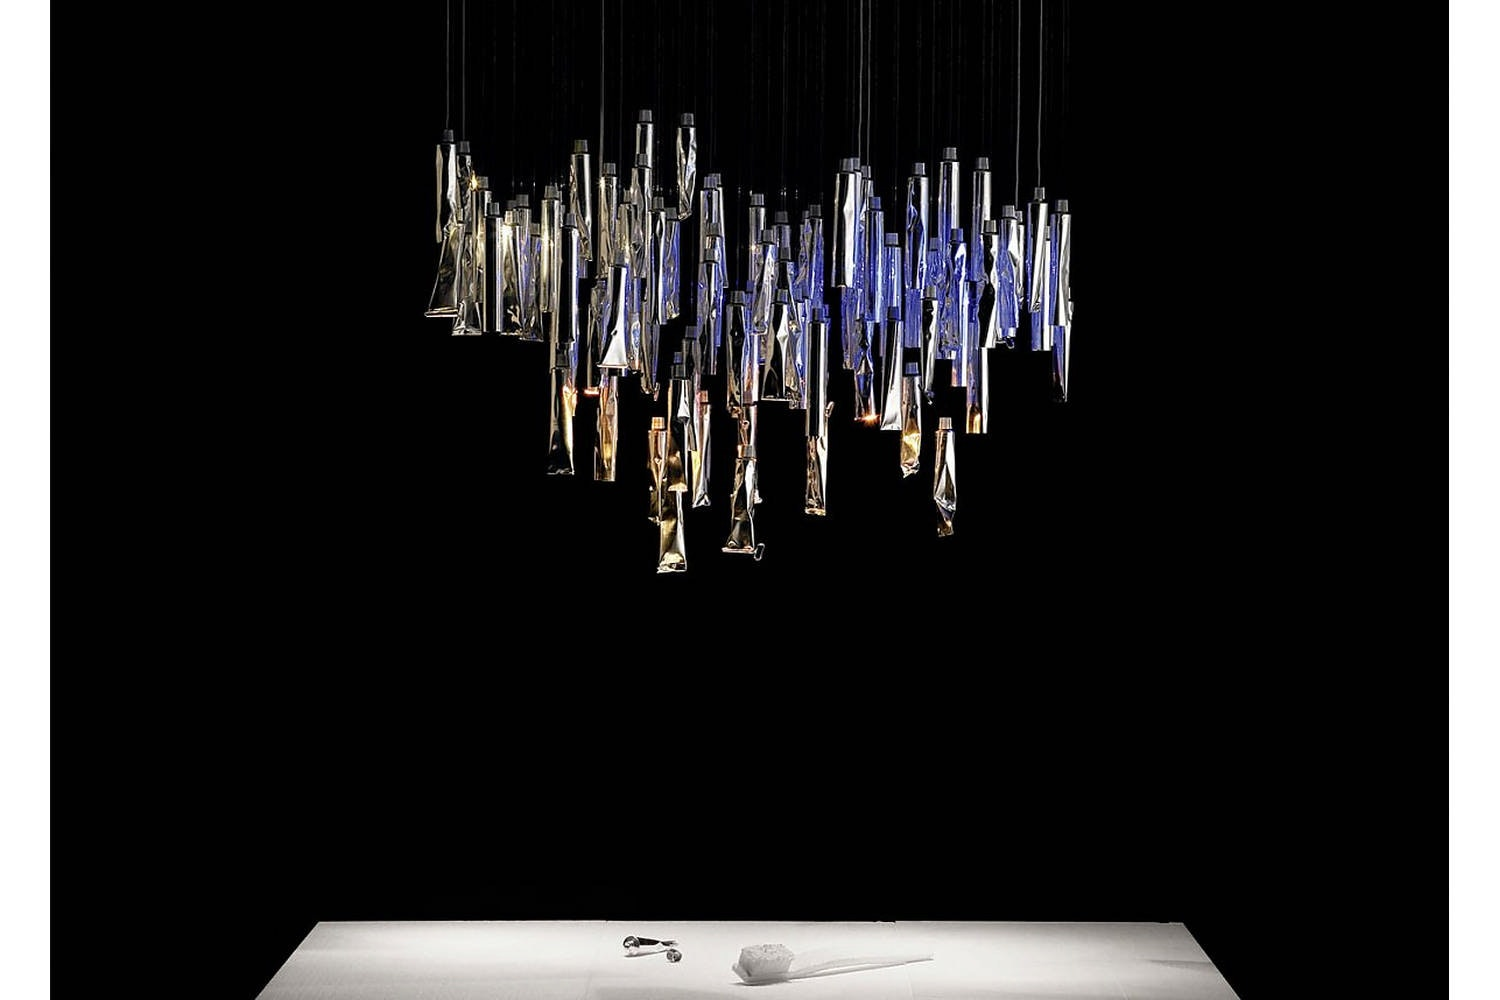 Tu-Be Luster Suspension Lamp by Ingo Maurer, Ron Arad for Ingo Maurer